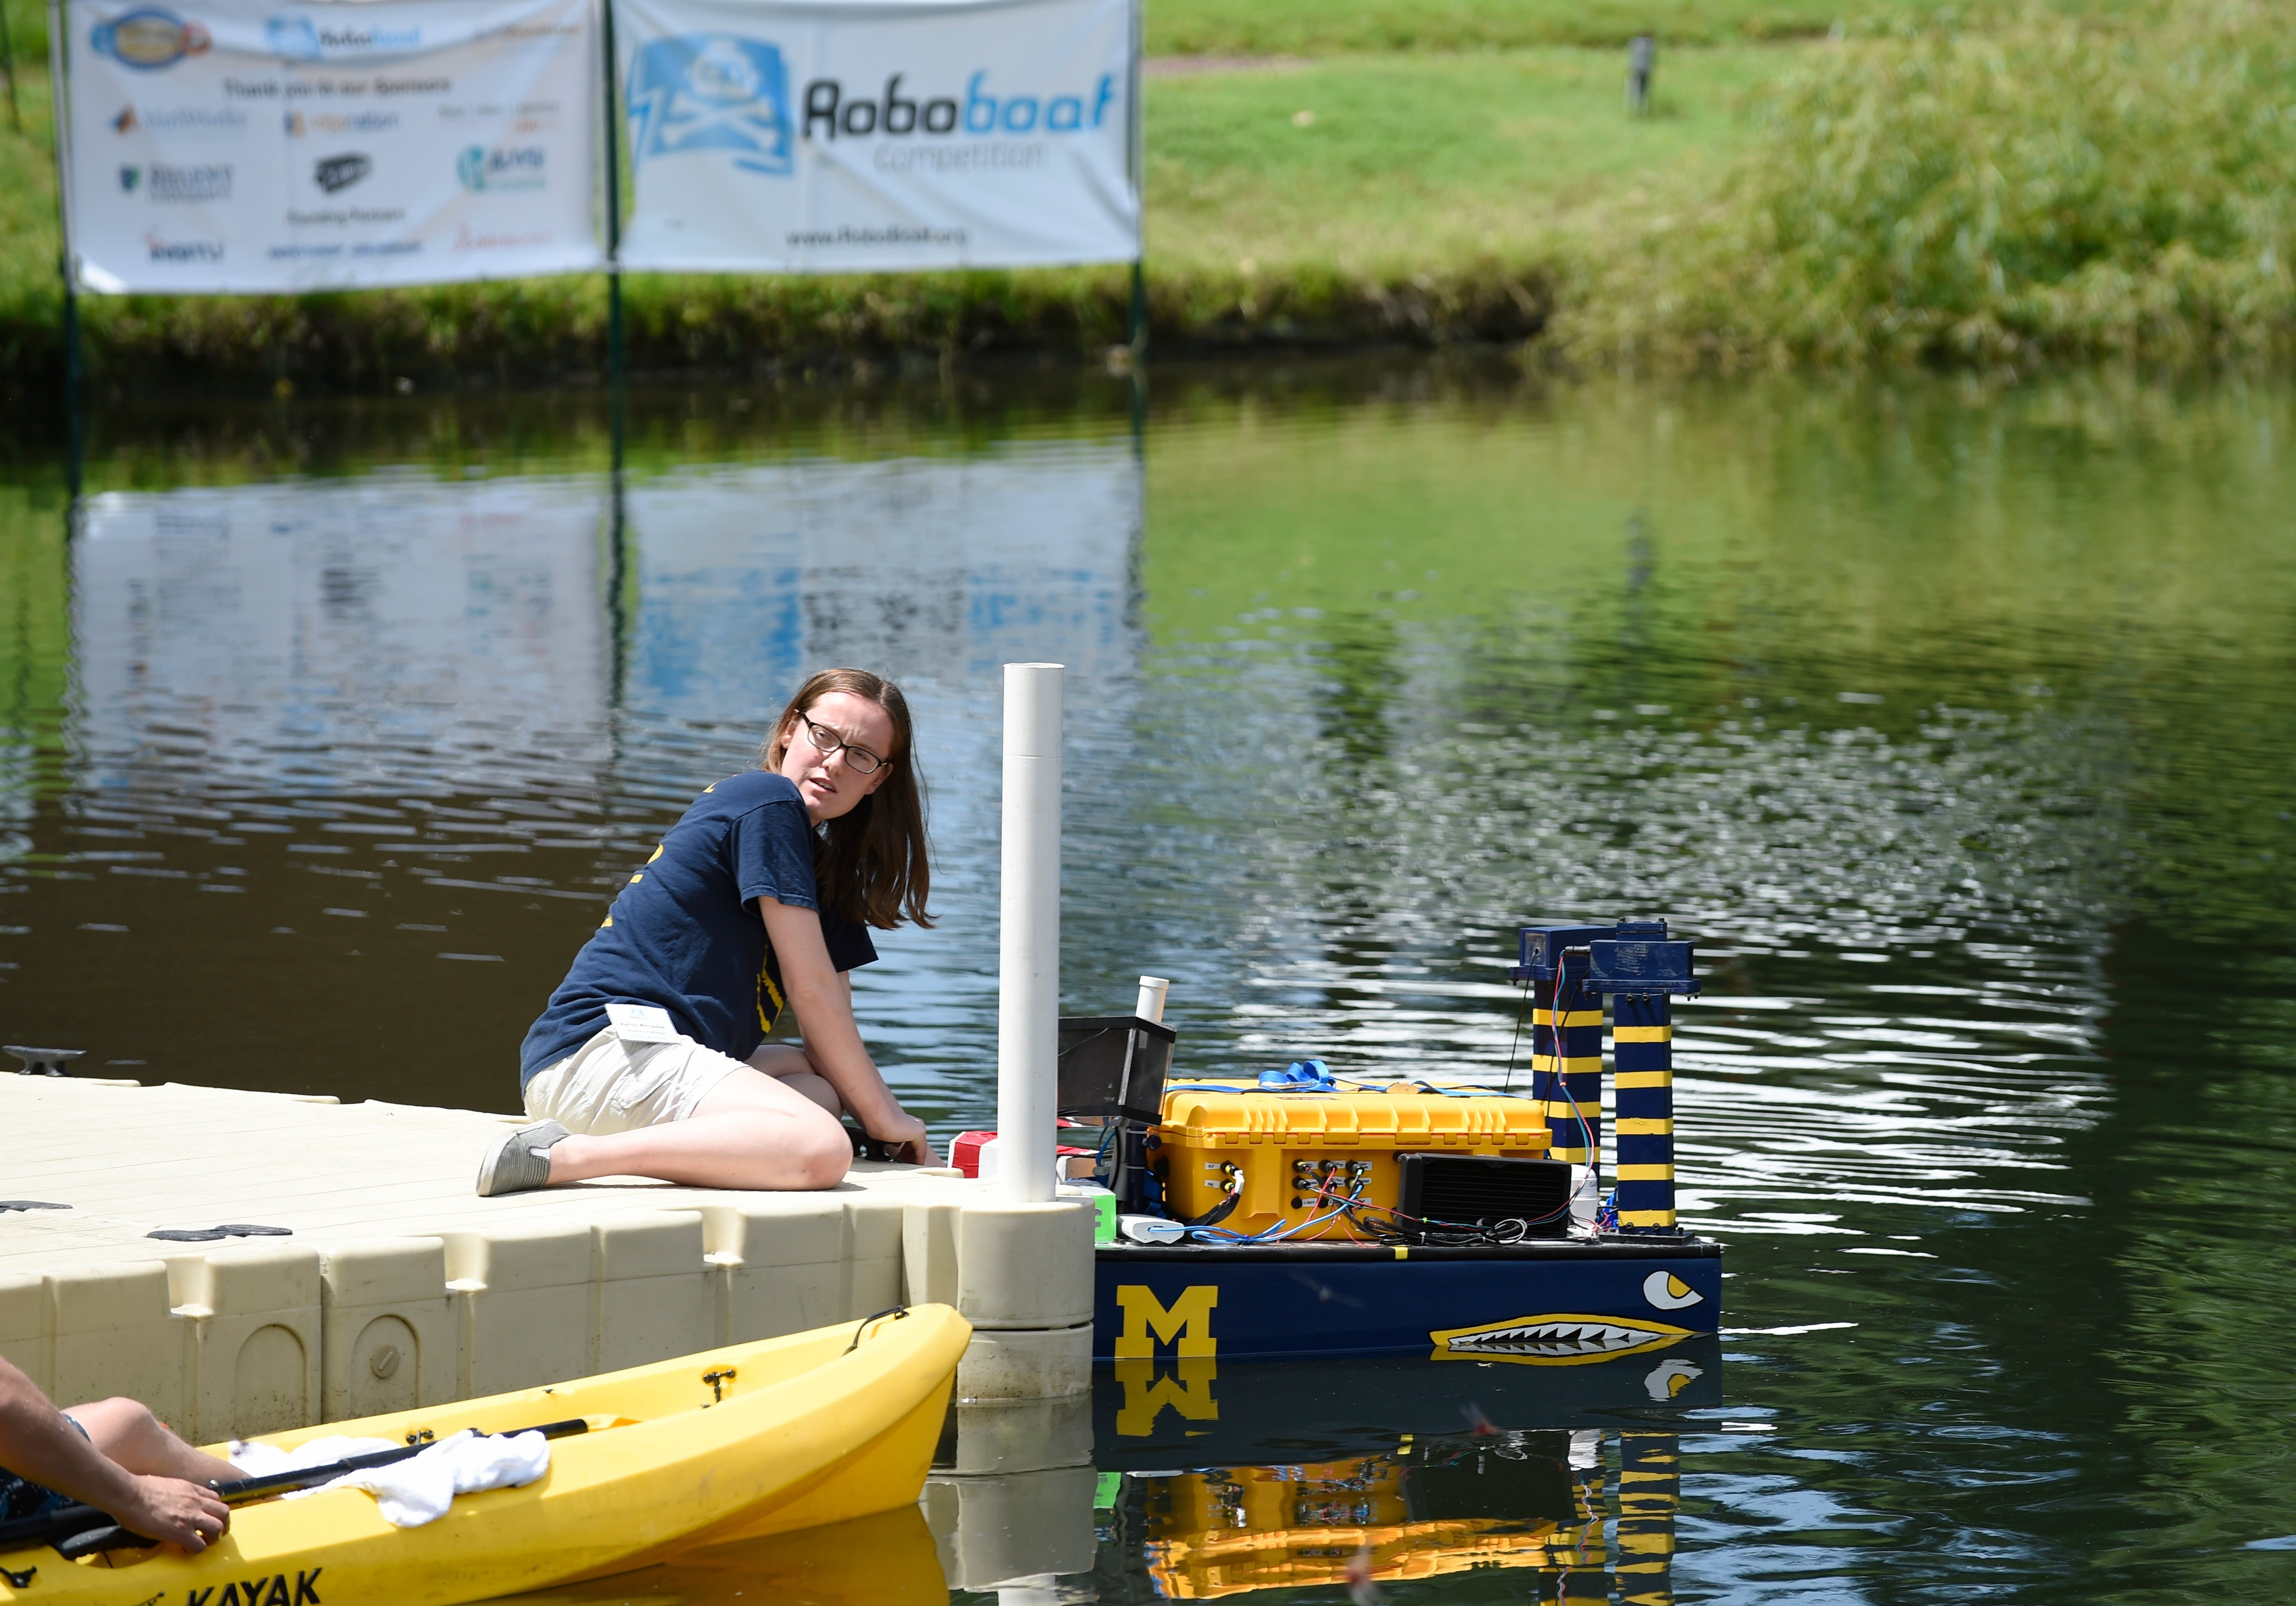 Embry-Riddle Aeronautical University, SeaPerch, RoboBoat Team Lead